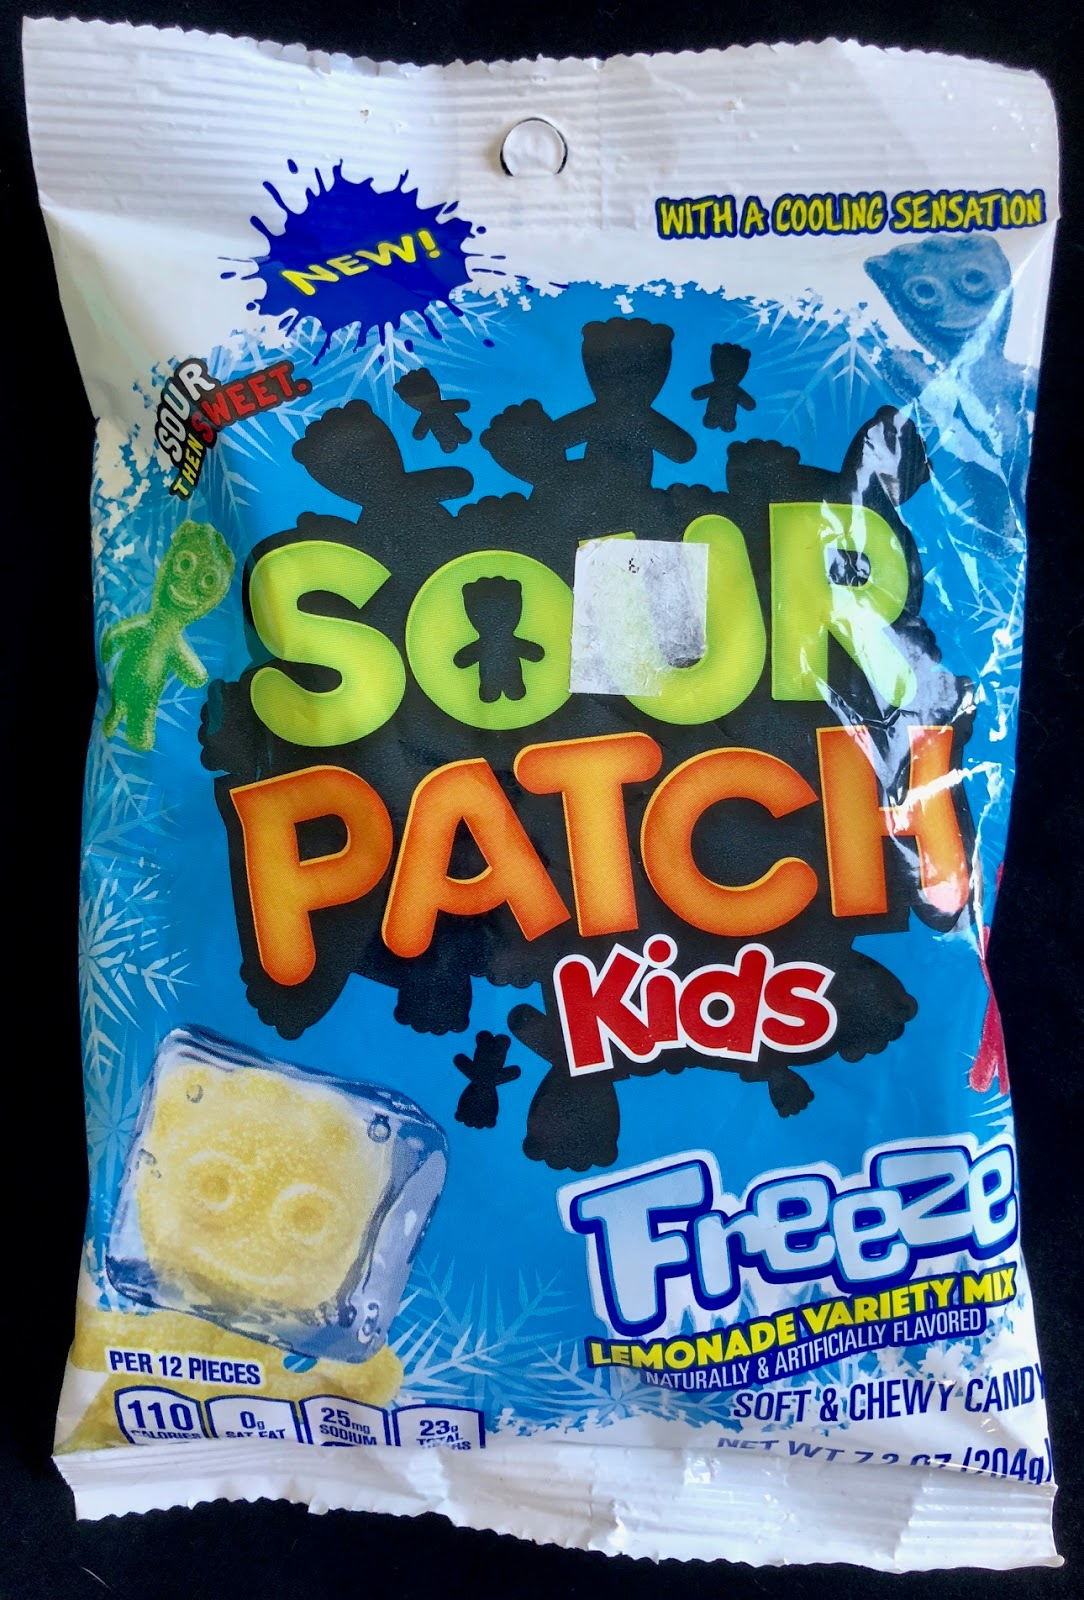 Obsessive Sweets New Sour Patch Kids Freeze Lemonade Variety Mix